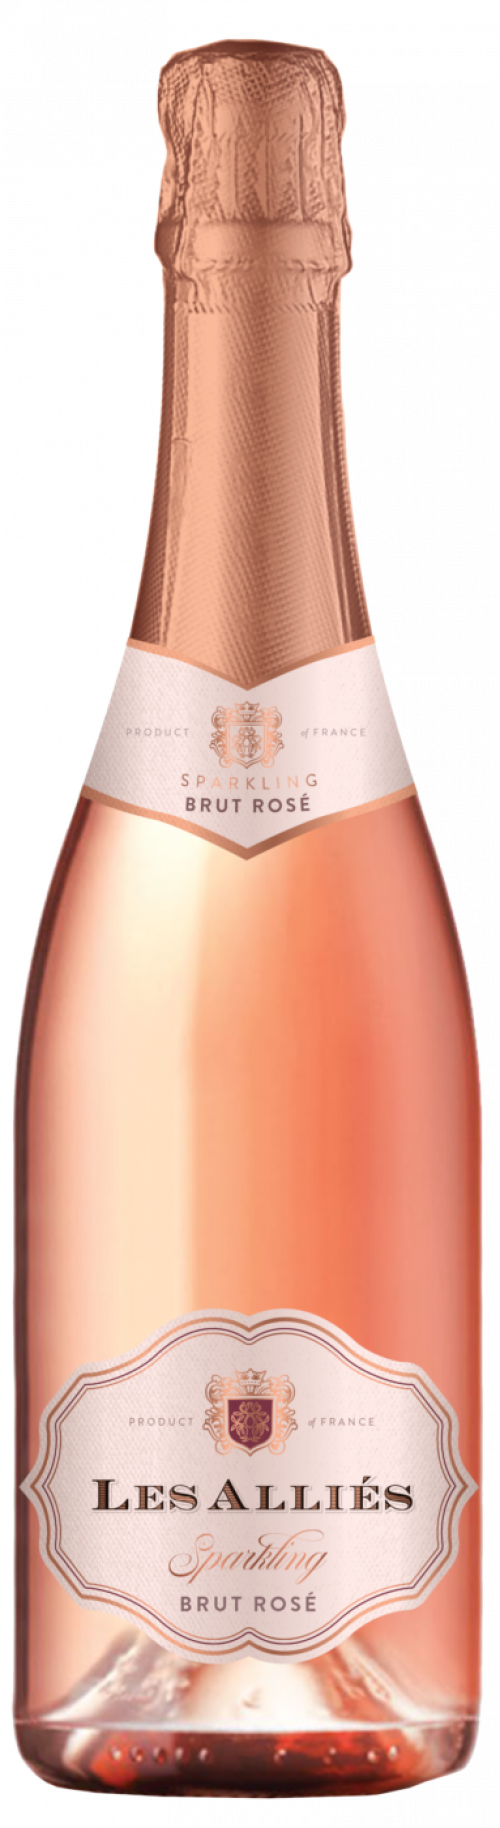 Les Allies Sparkling Brut Rose 750ml